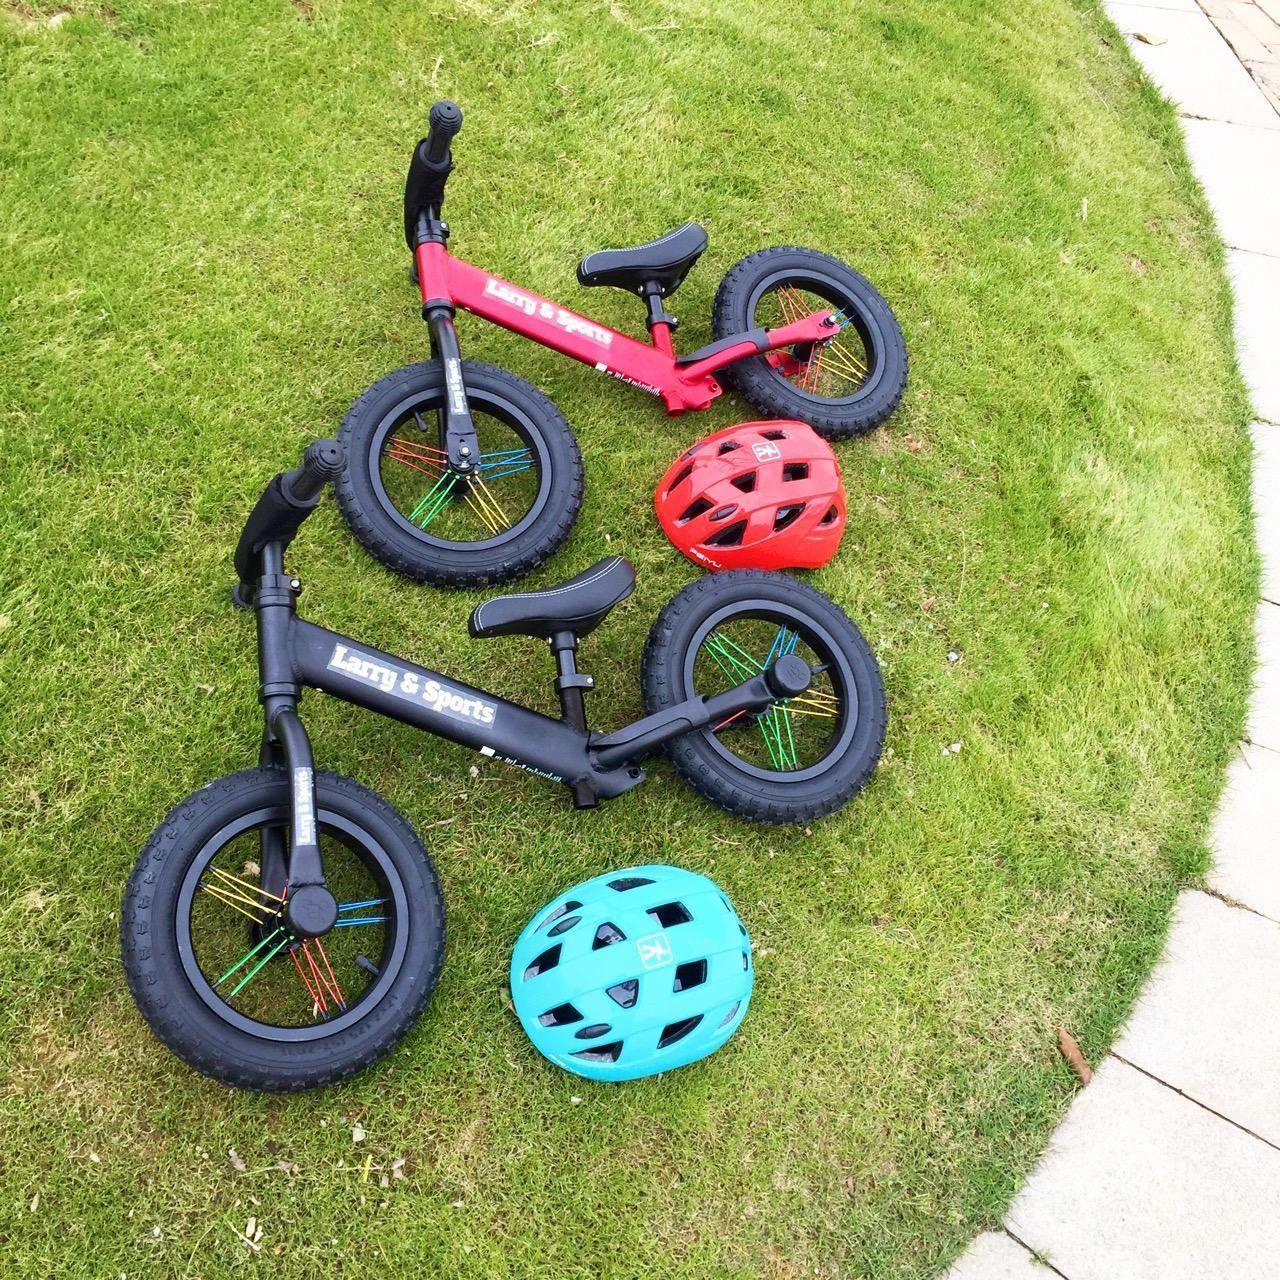 【A1204】 12-inch aluminum alloy kids balance push bike with foot-pedal Manufactures